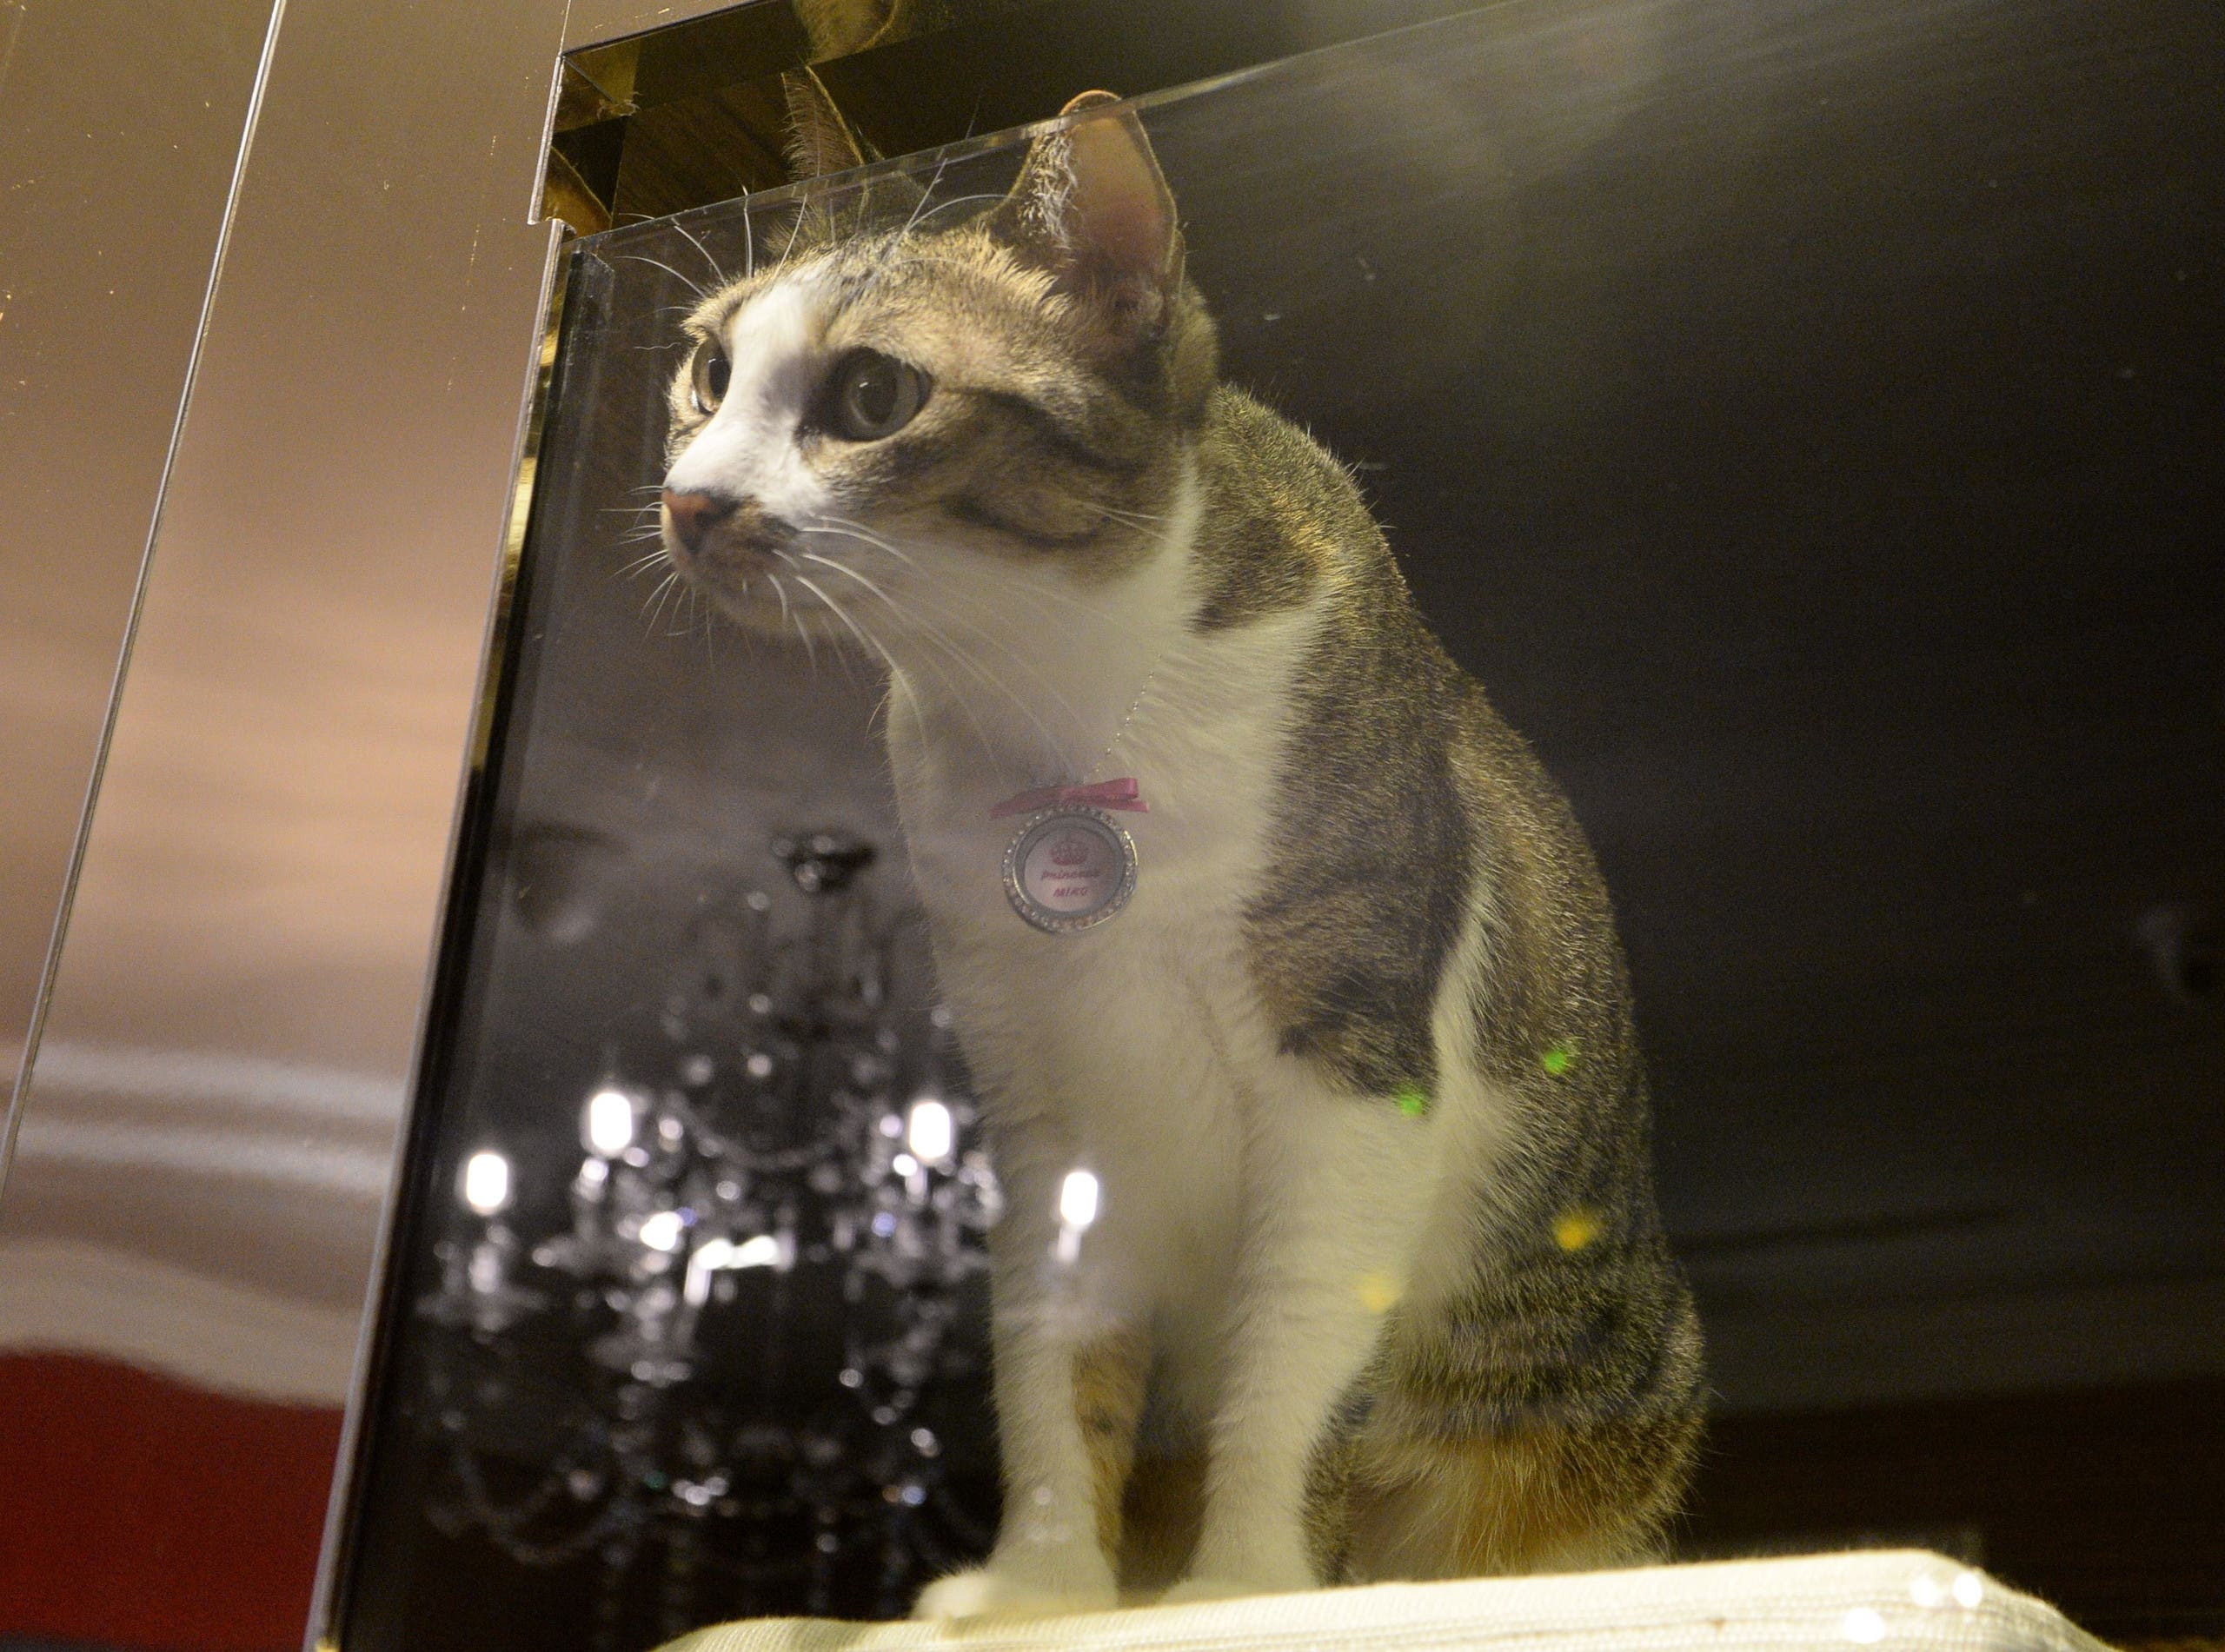 A pet cat looks out from its enclosure at the hotel (AFP)